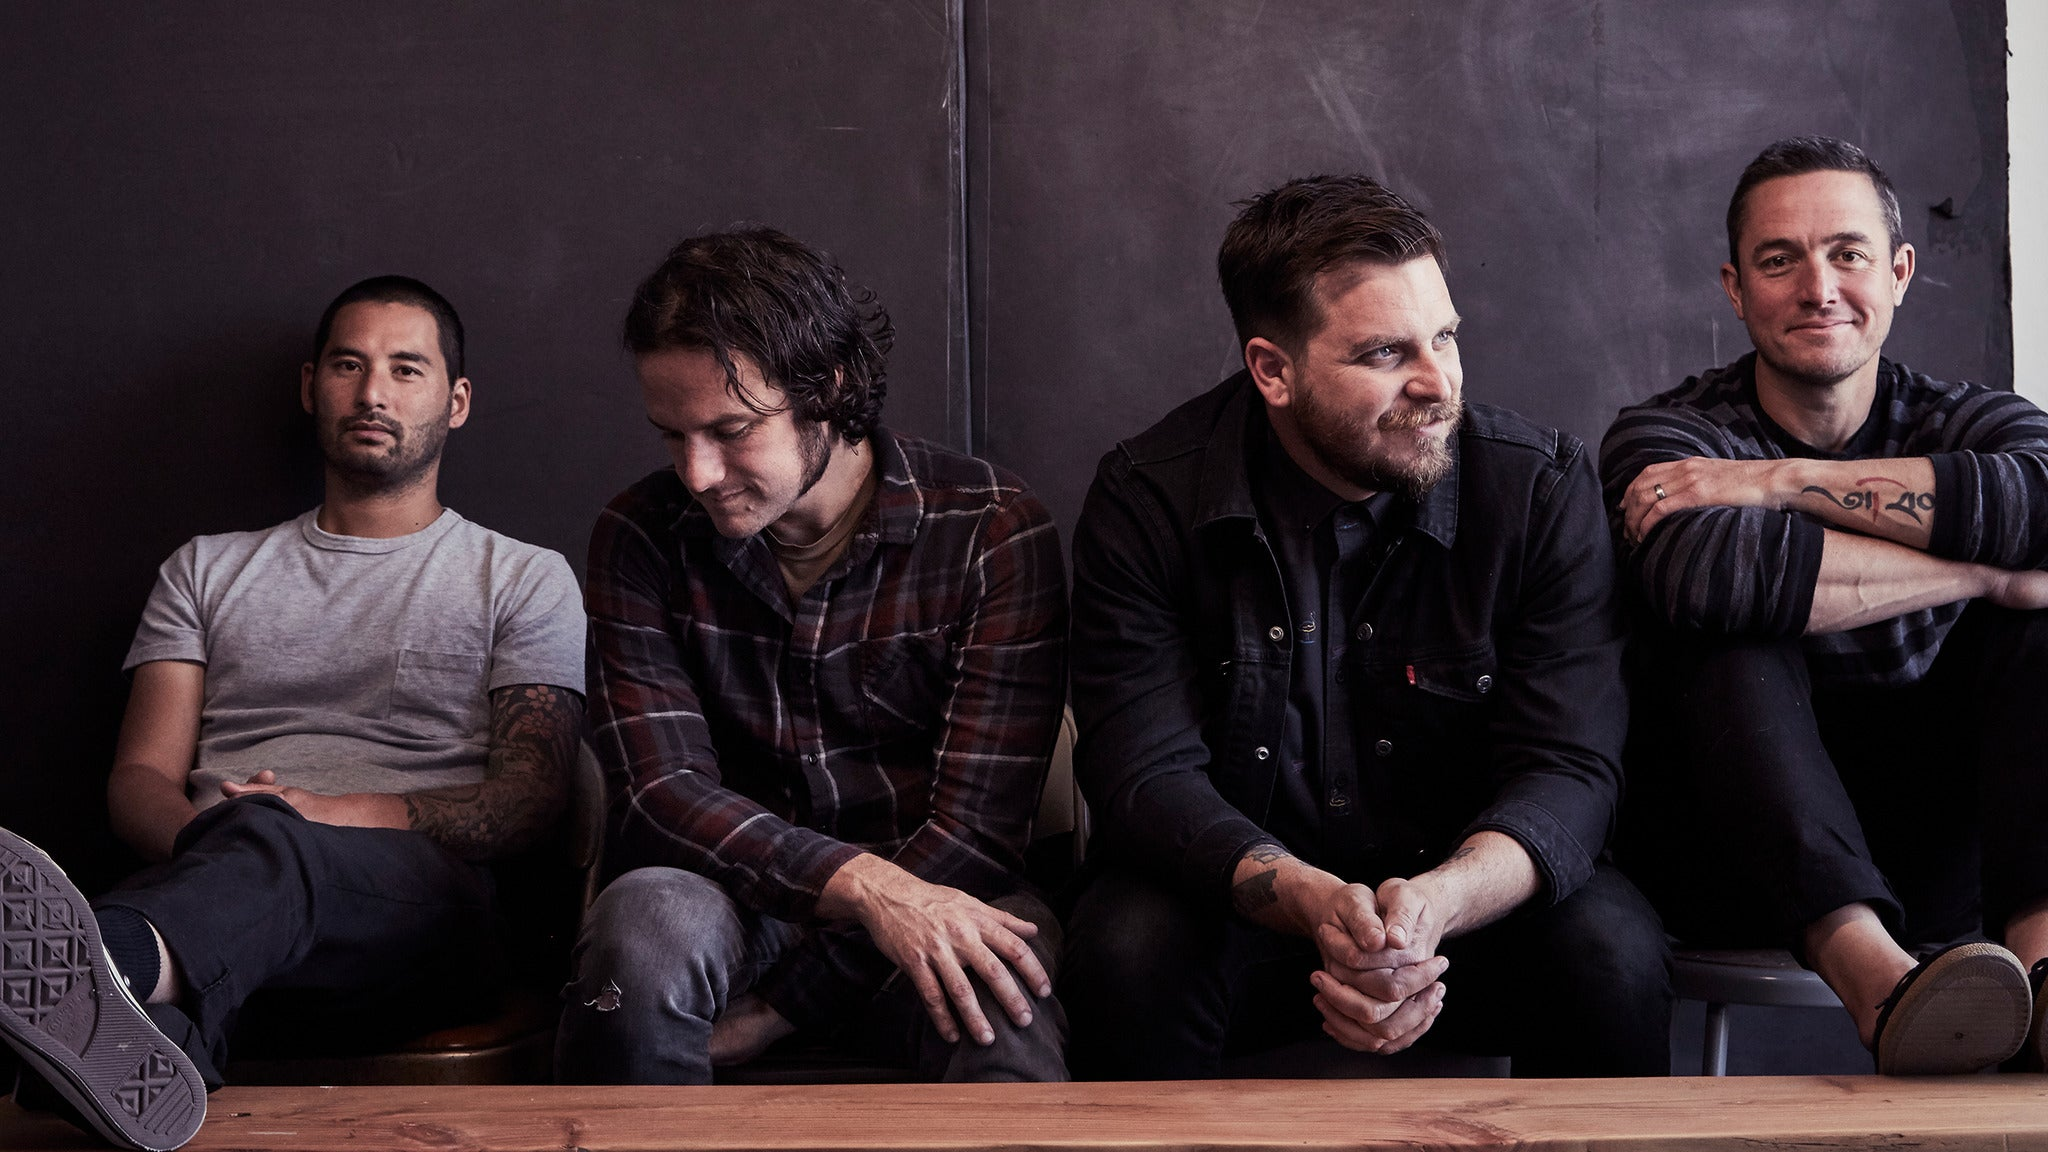 Thrice w/ MeWithoutYou at The Observatory - San Diego